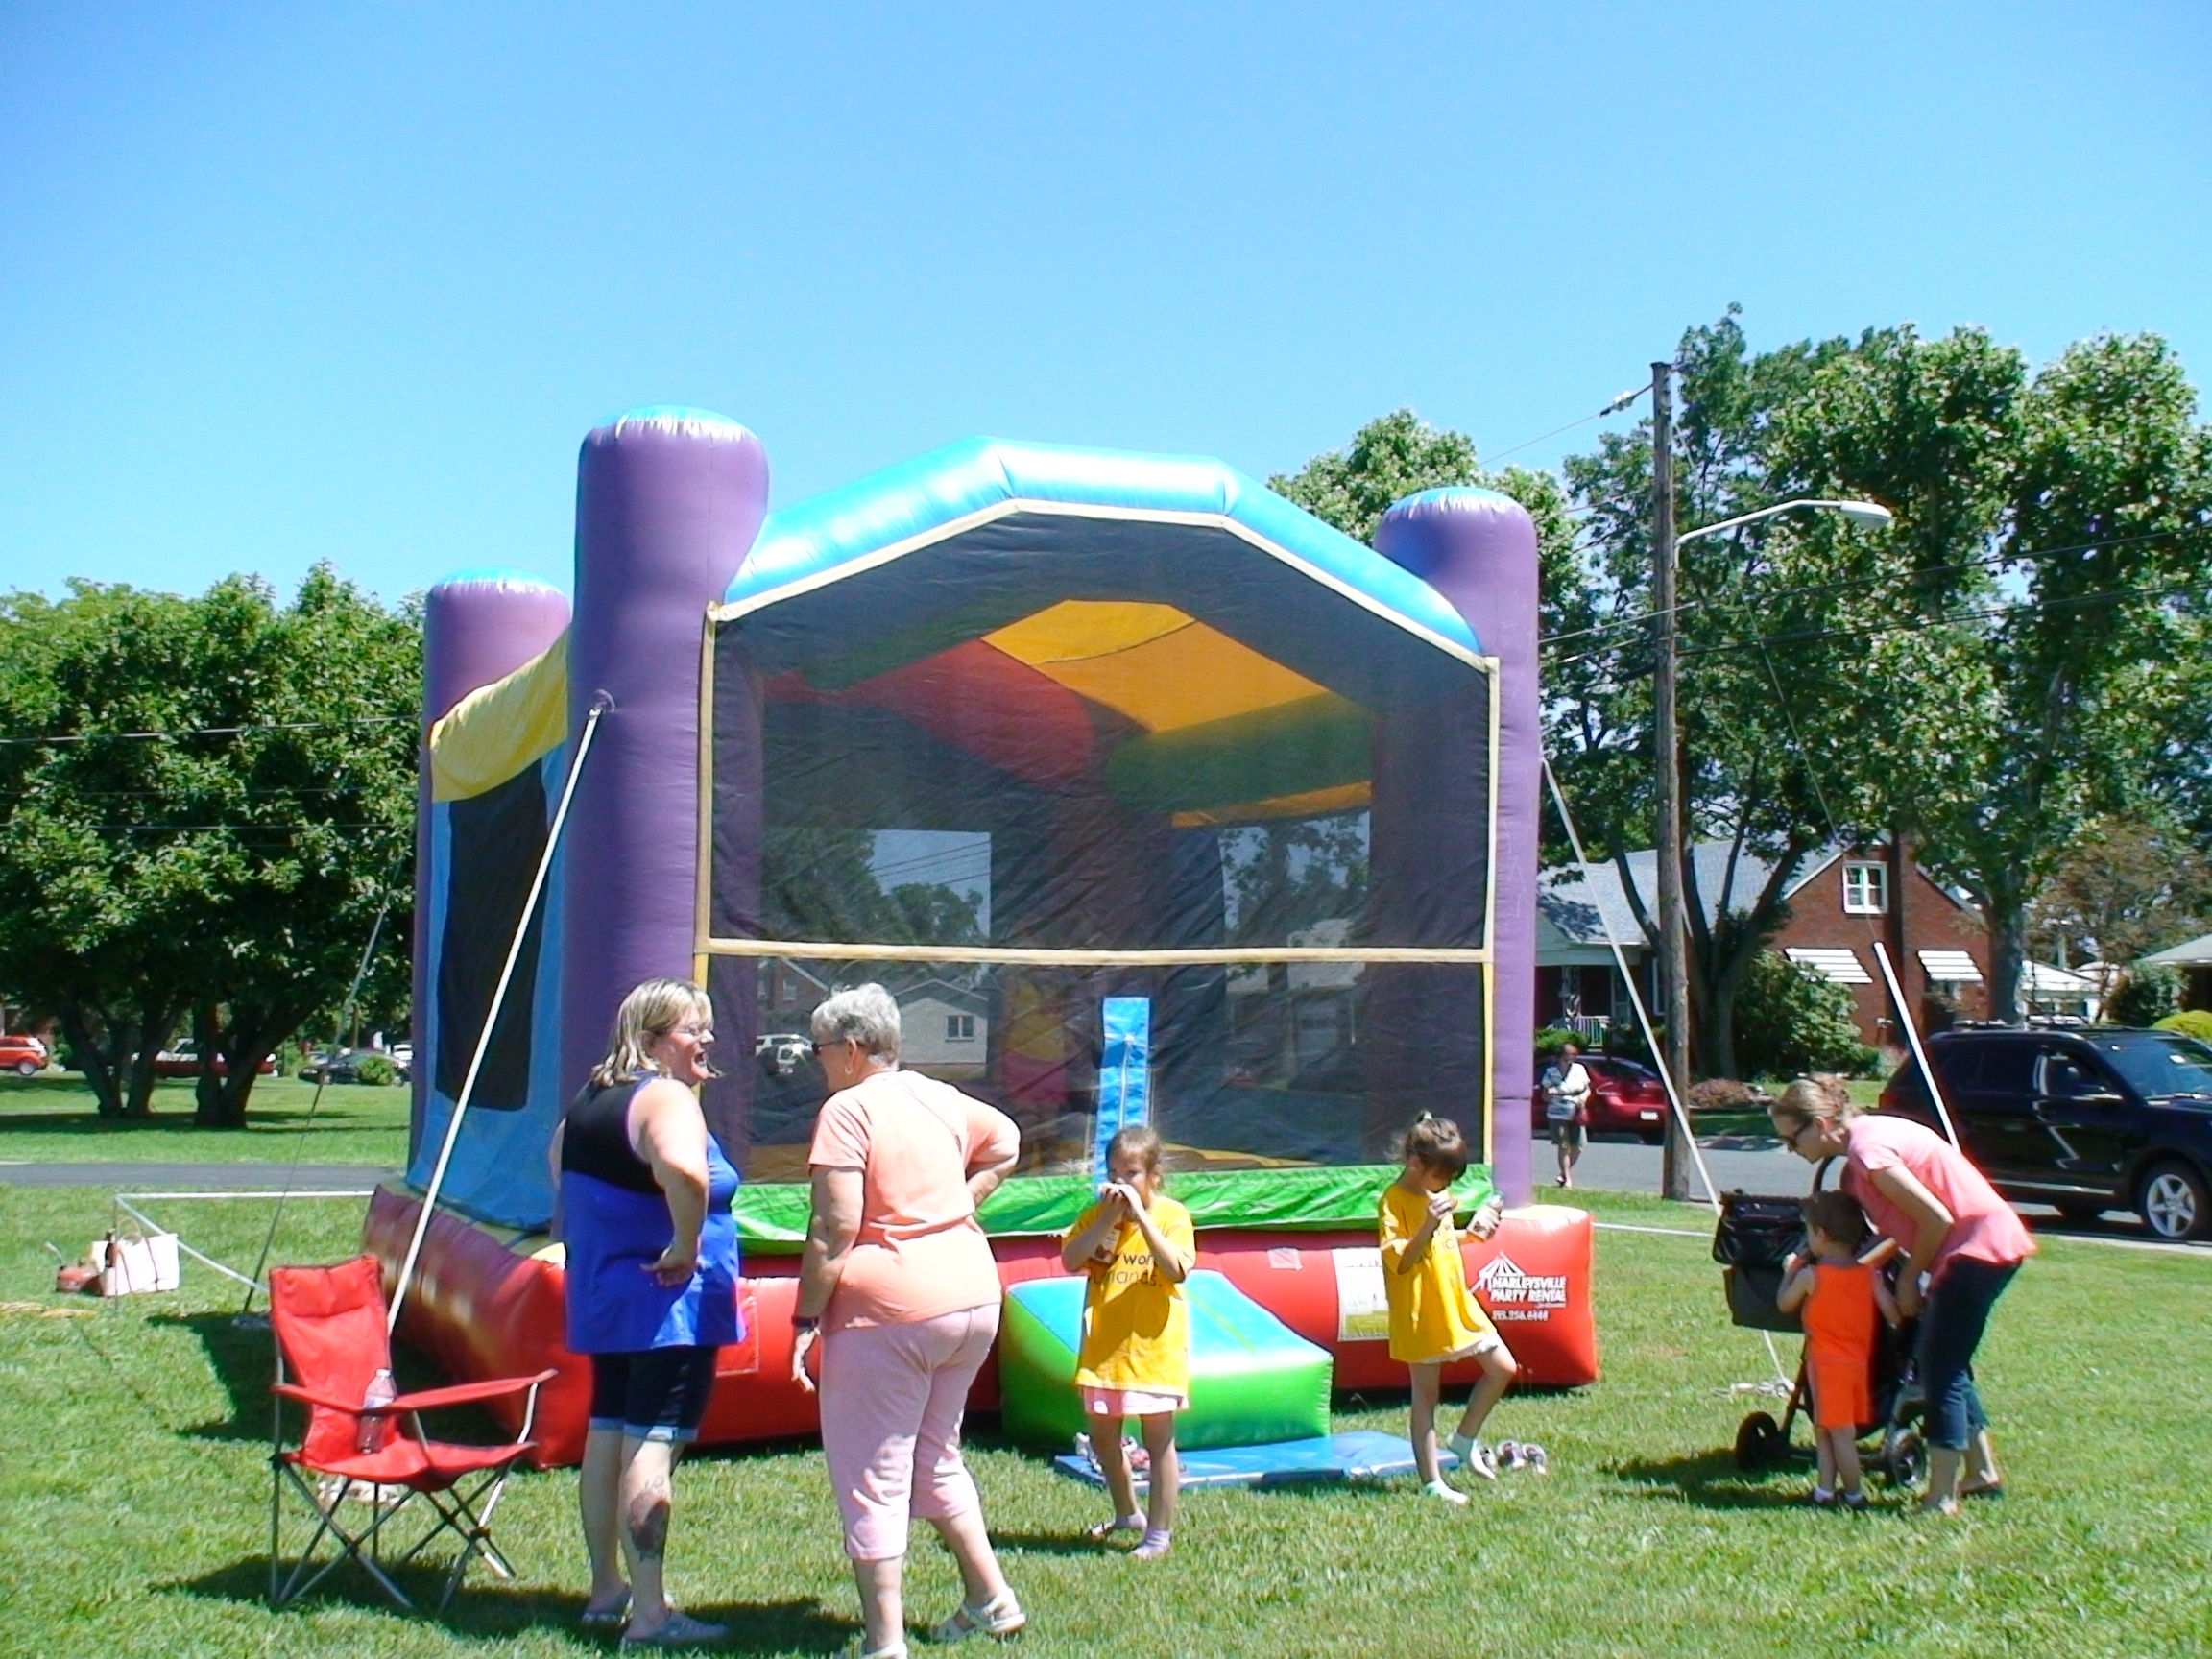 Block Party Fundraiser for Quakertown Community Outreach – Sat June 22 2-6 (Rain Date June 23 2-6)